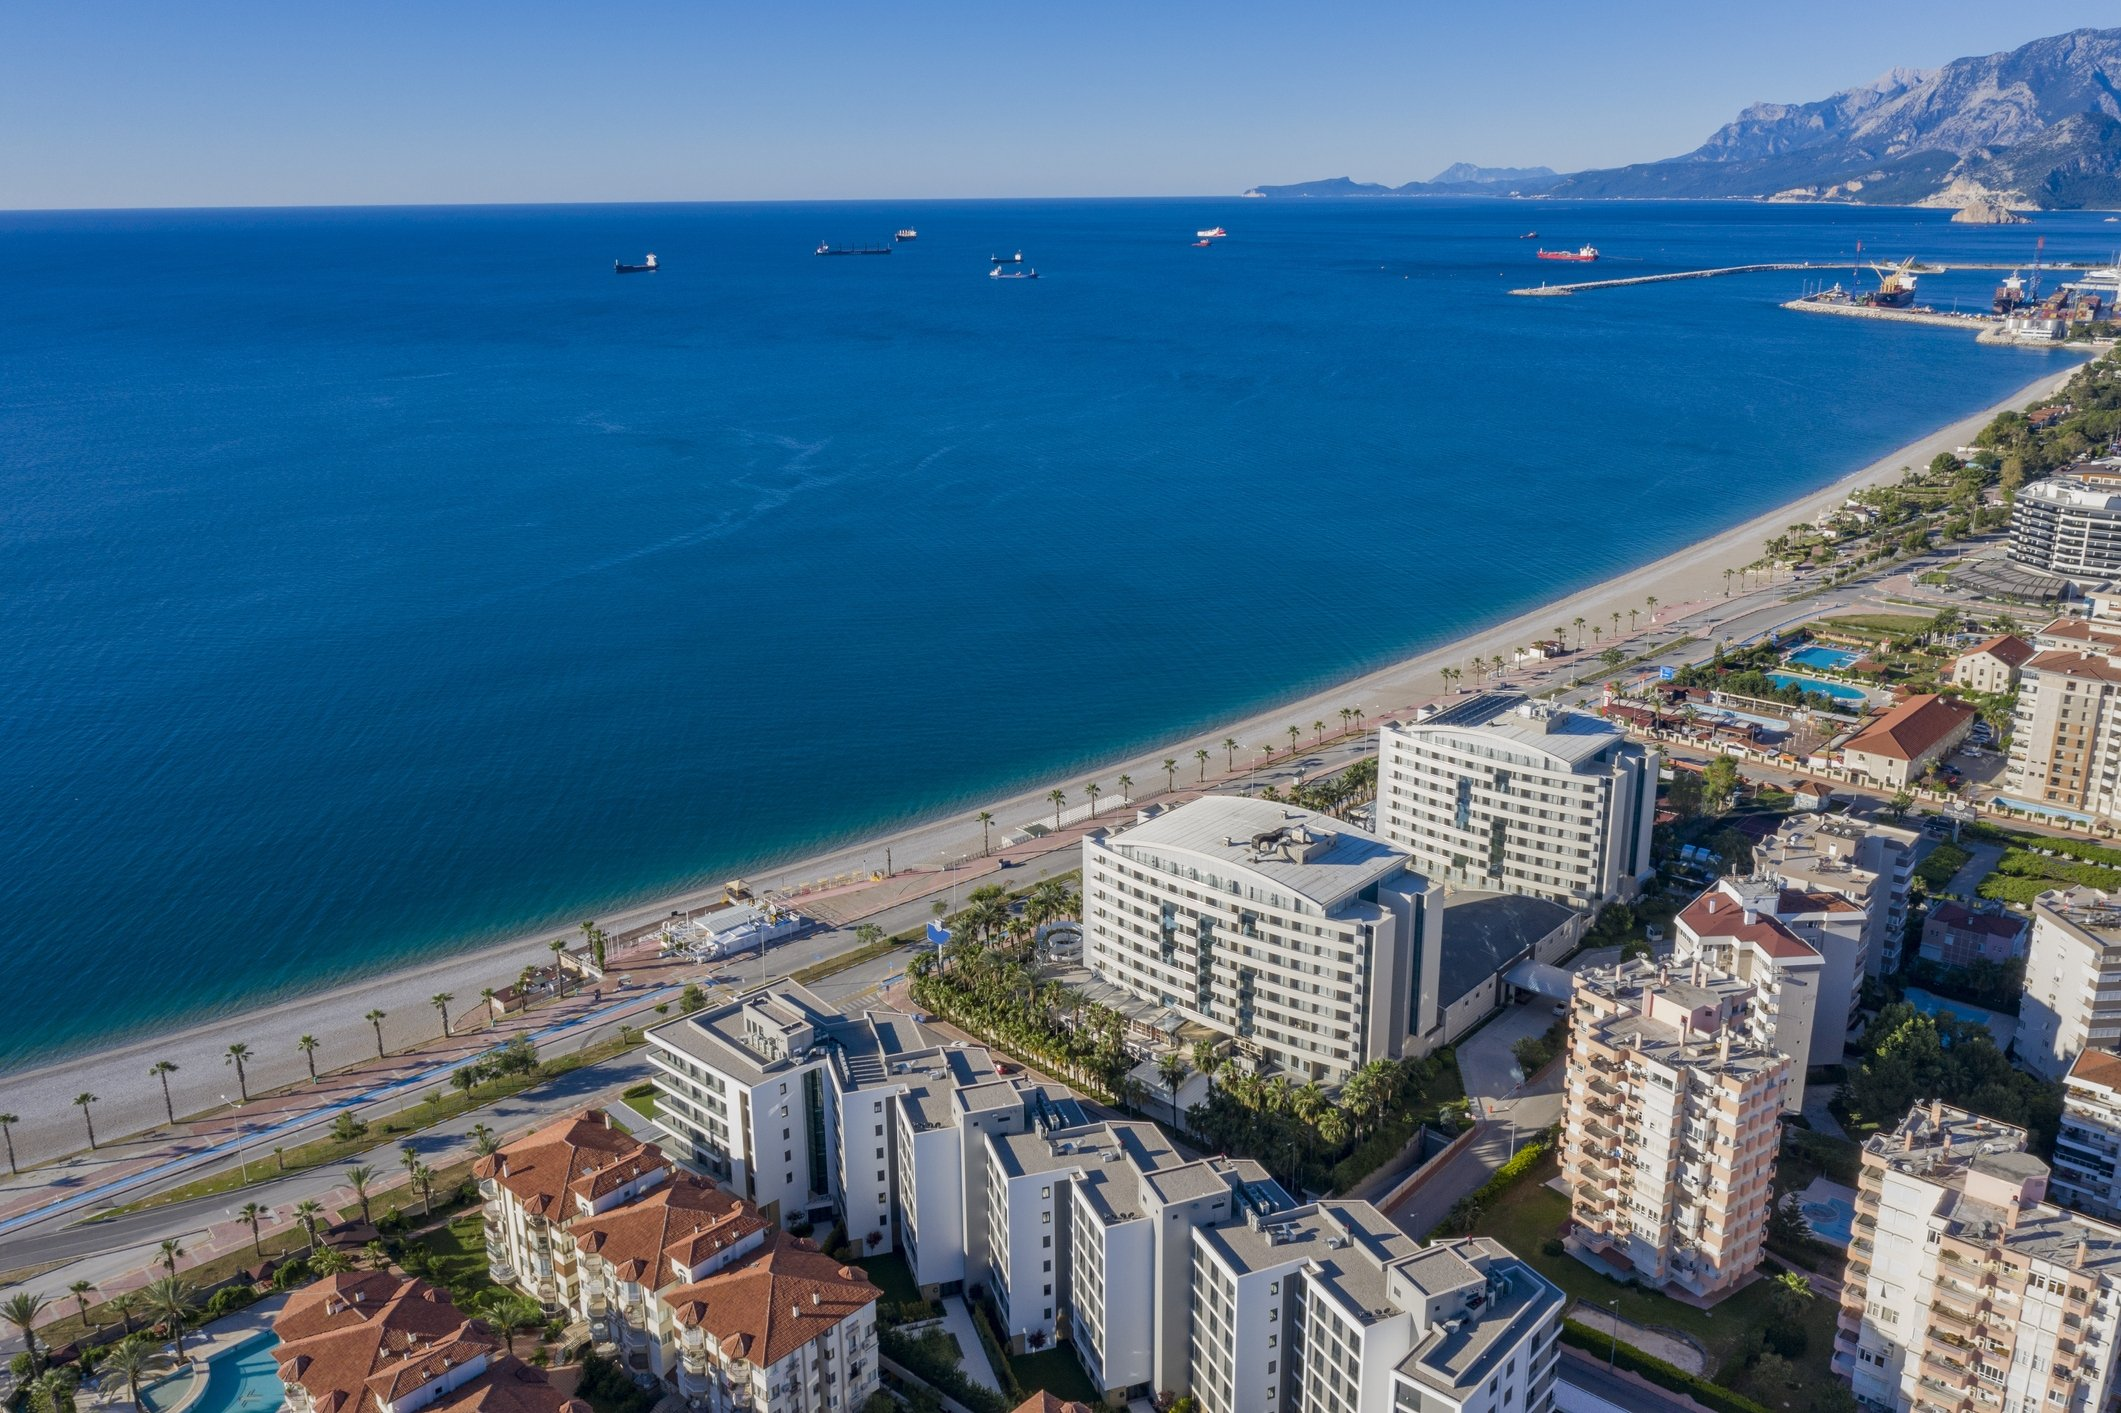 From village houses and villas to apartments, foreigners can buy any property they want in Turkey within legal restrictions. (iStock Photo)